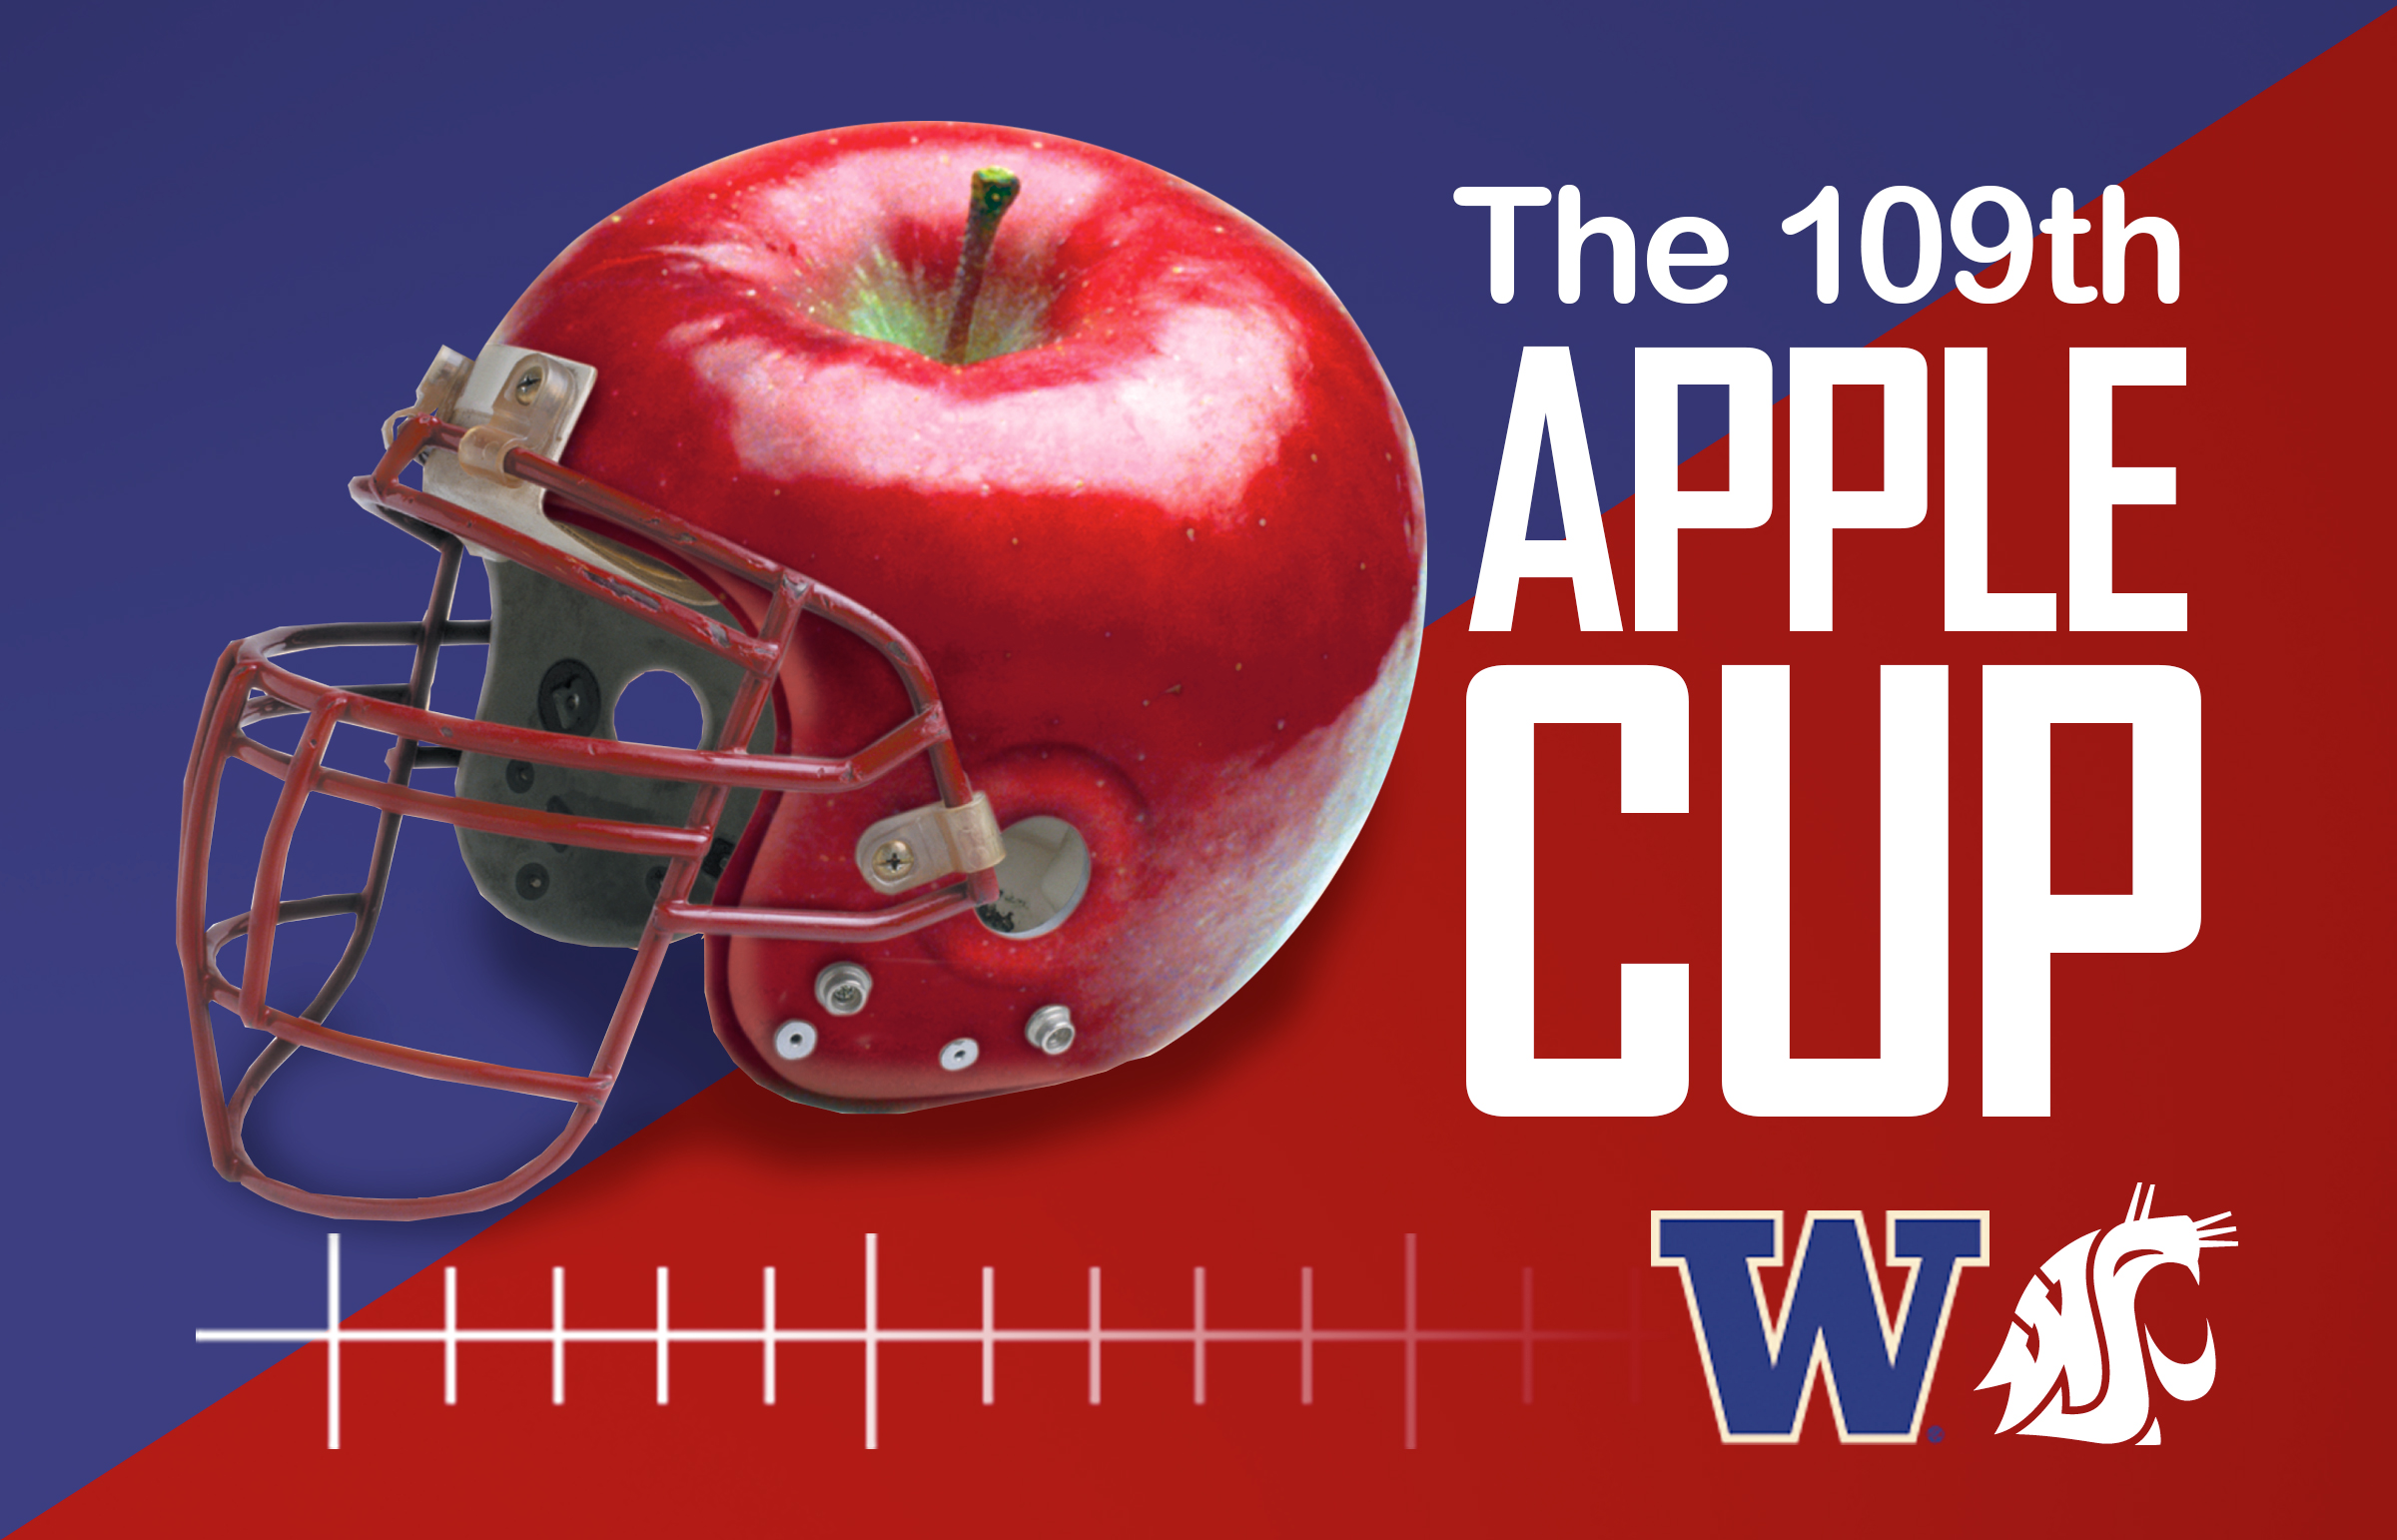 What S Your Favorite Apple Cup Memory